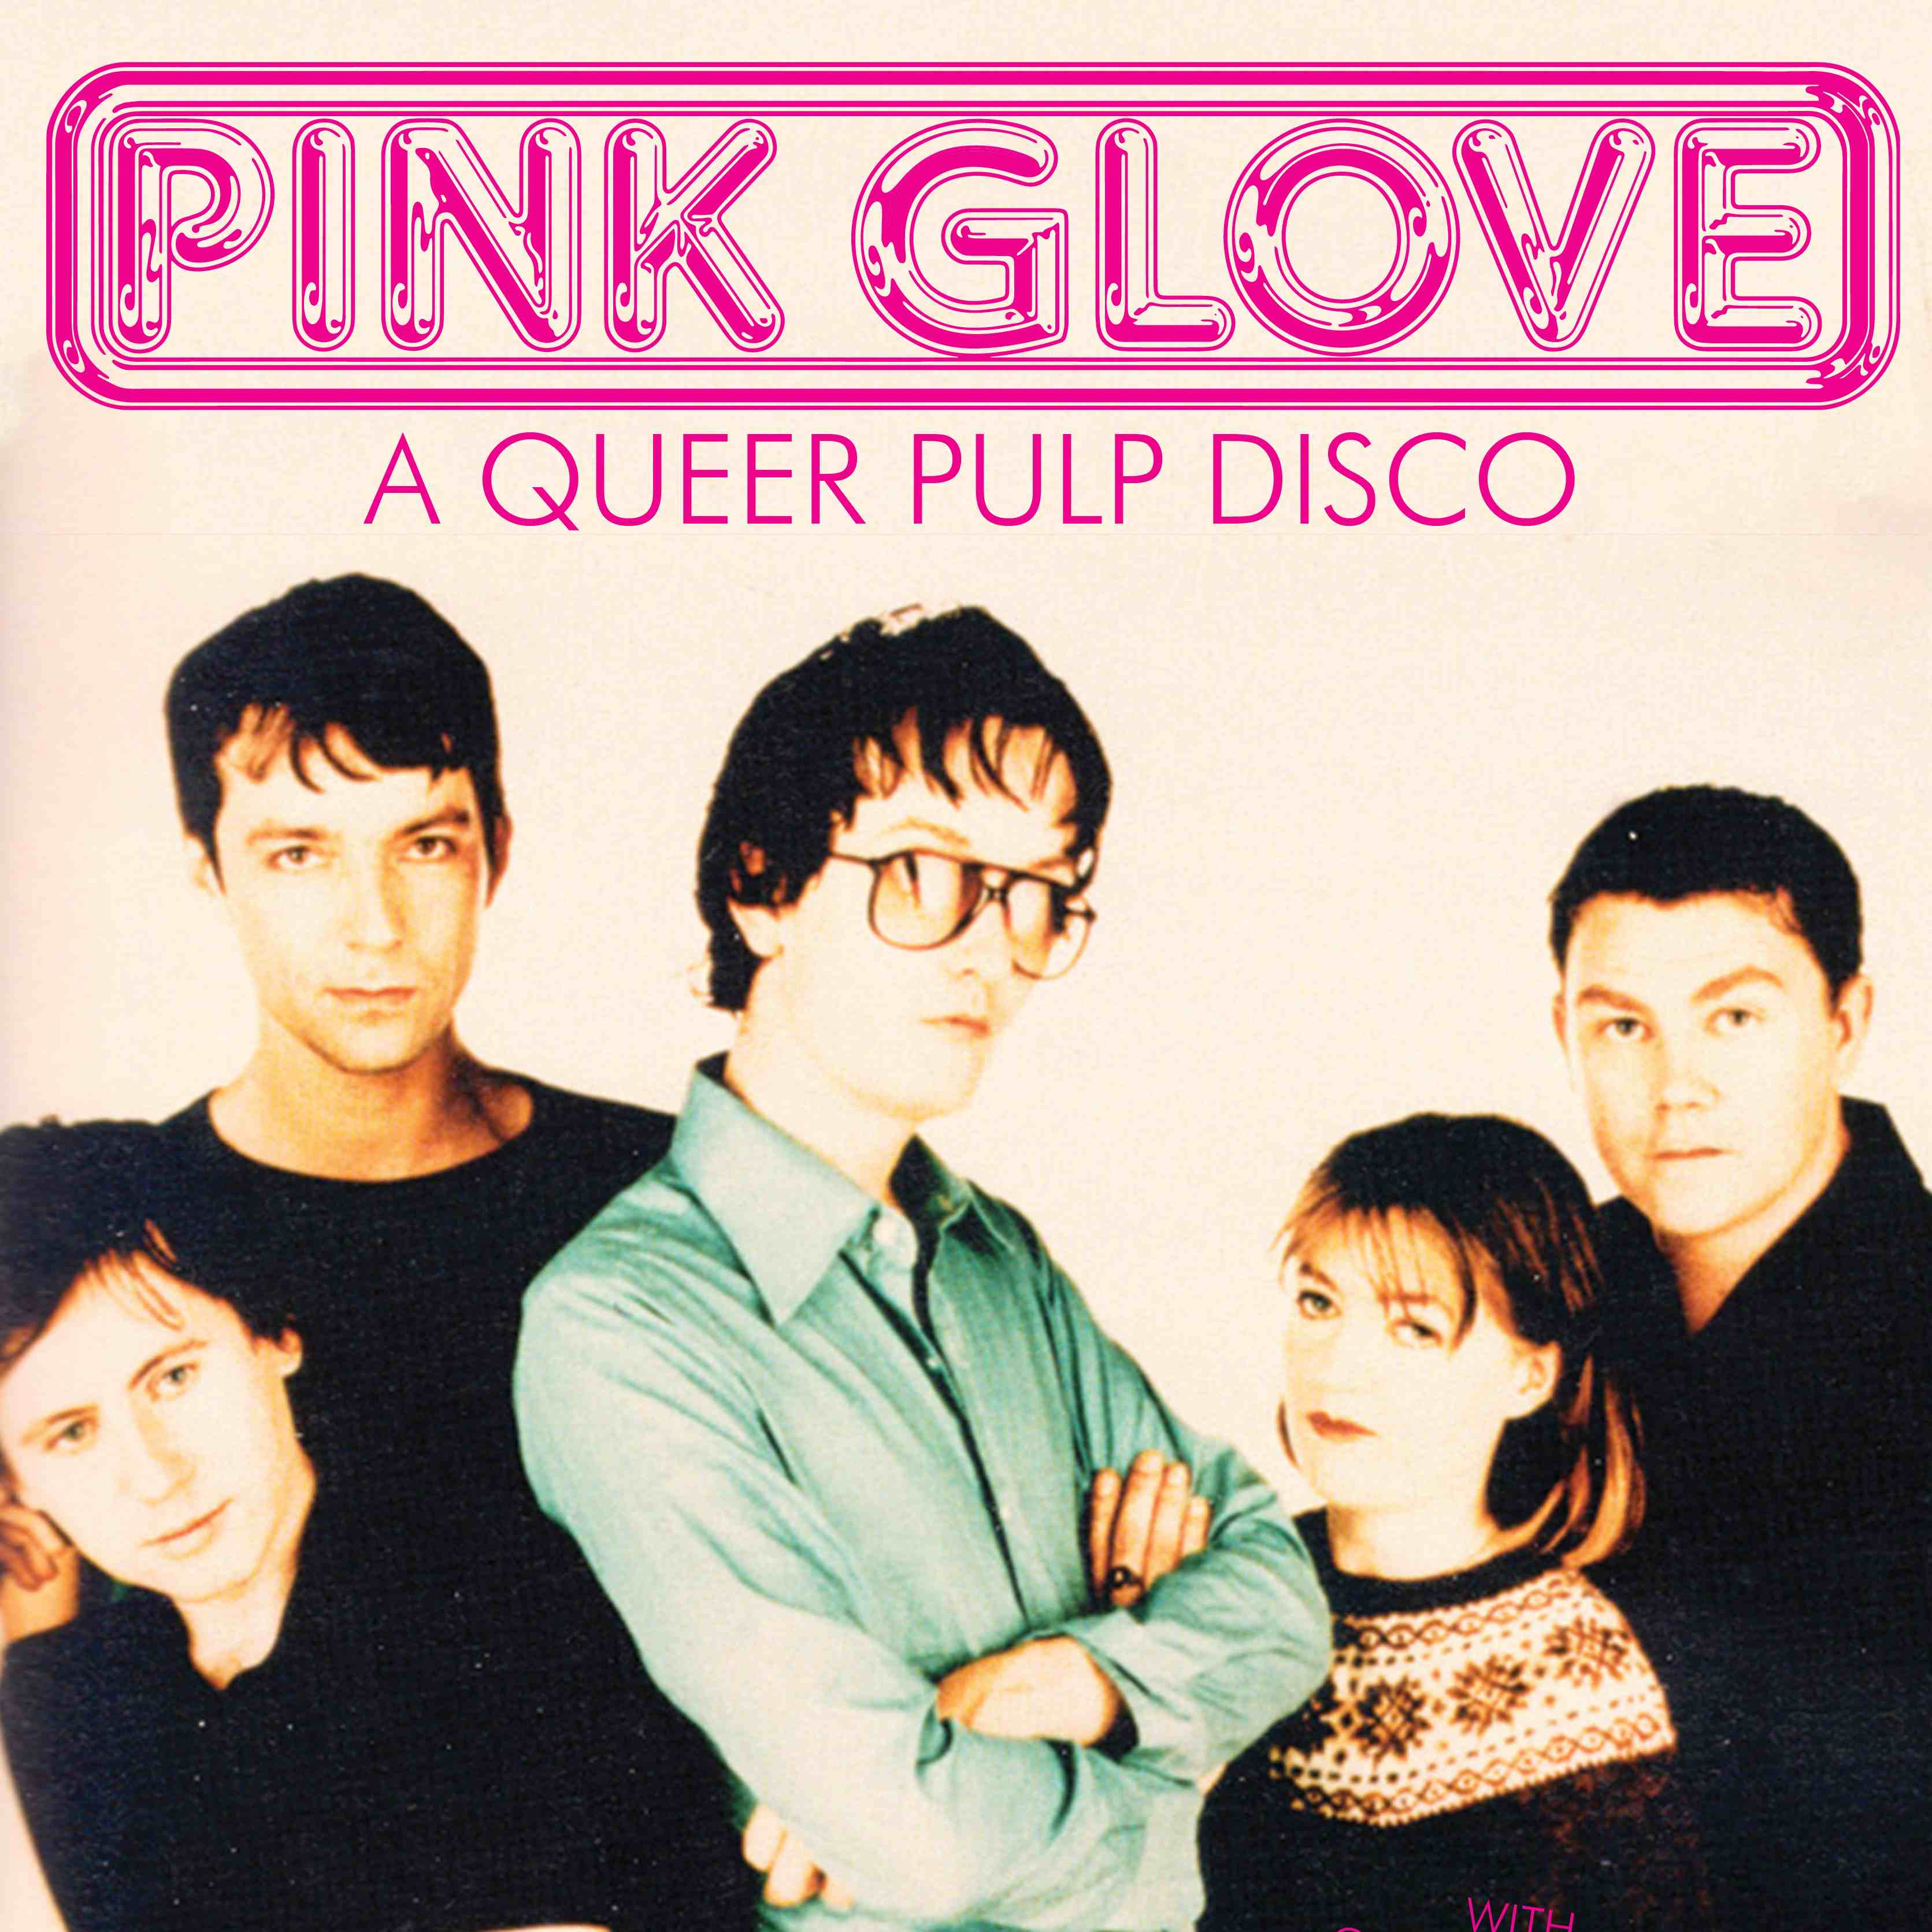 Pink Glove: a Queer Pulp / Indie / Post Punk / New Wave disco at The Victoria promotional image